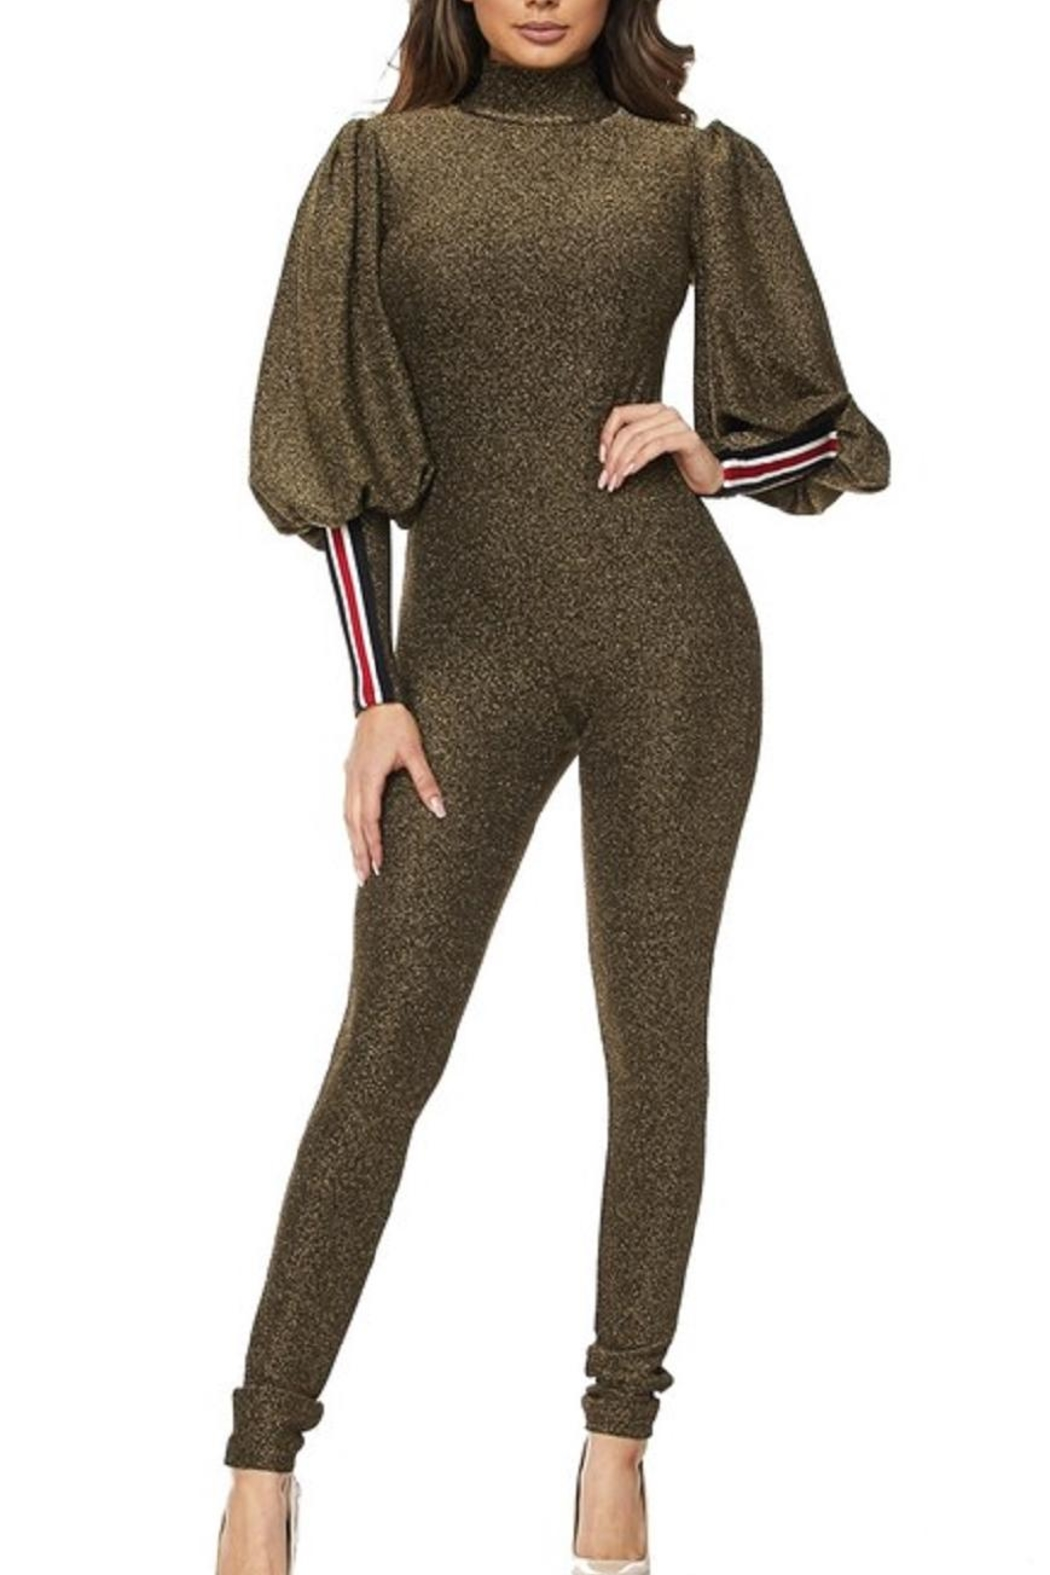 hera collection Olive Shimmer Jumpsuit - Main Image